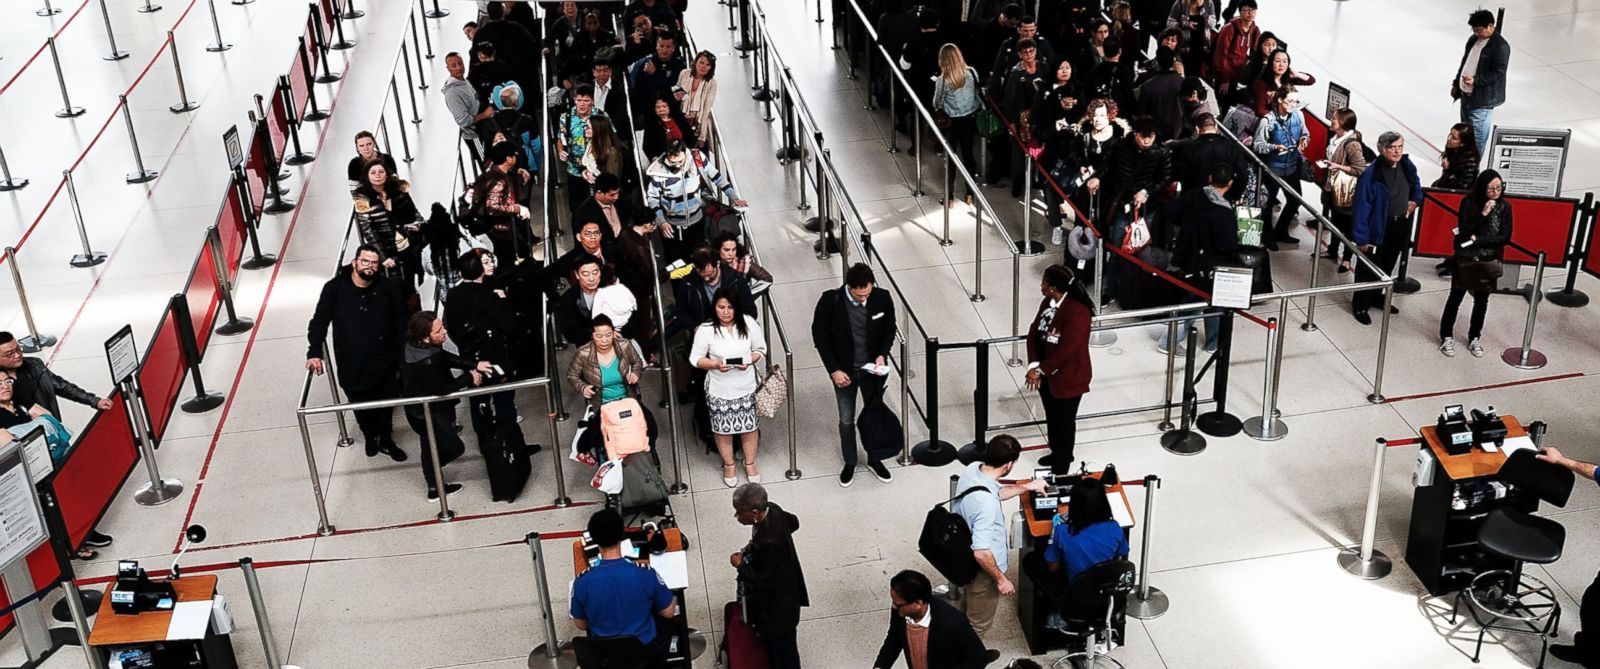 PHOTO: People wait in a security line at John F. Kennedy Airport (JFK), March 24, 2016, in New York City.